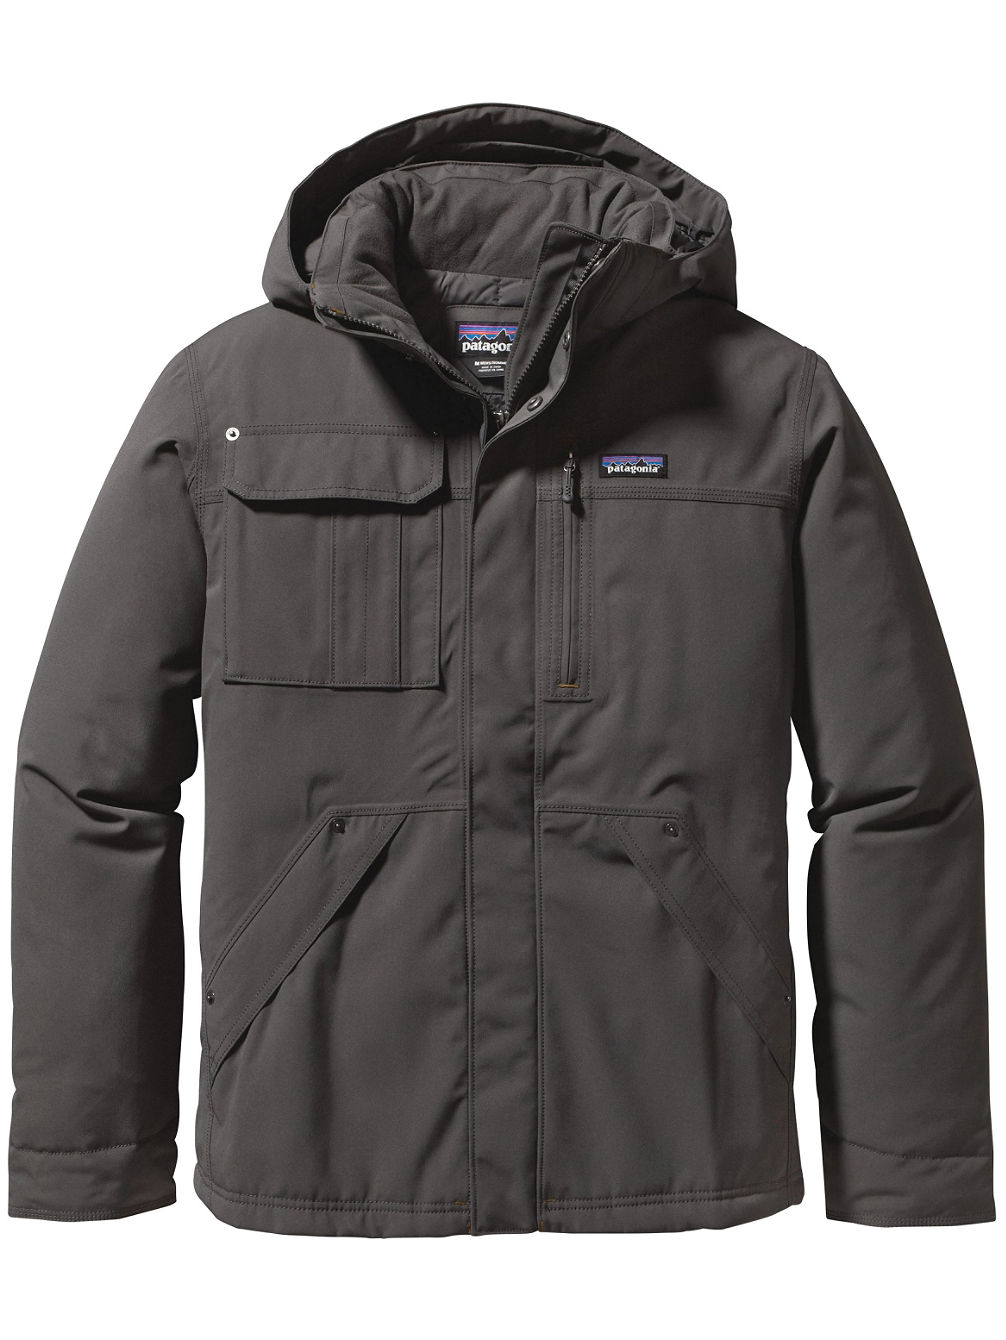 52ed948fd1d9 ISLAND DOWN JACKET available via PricePi.com. Shop the entire ...